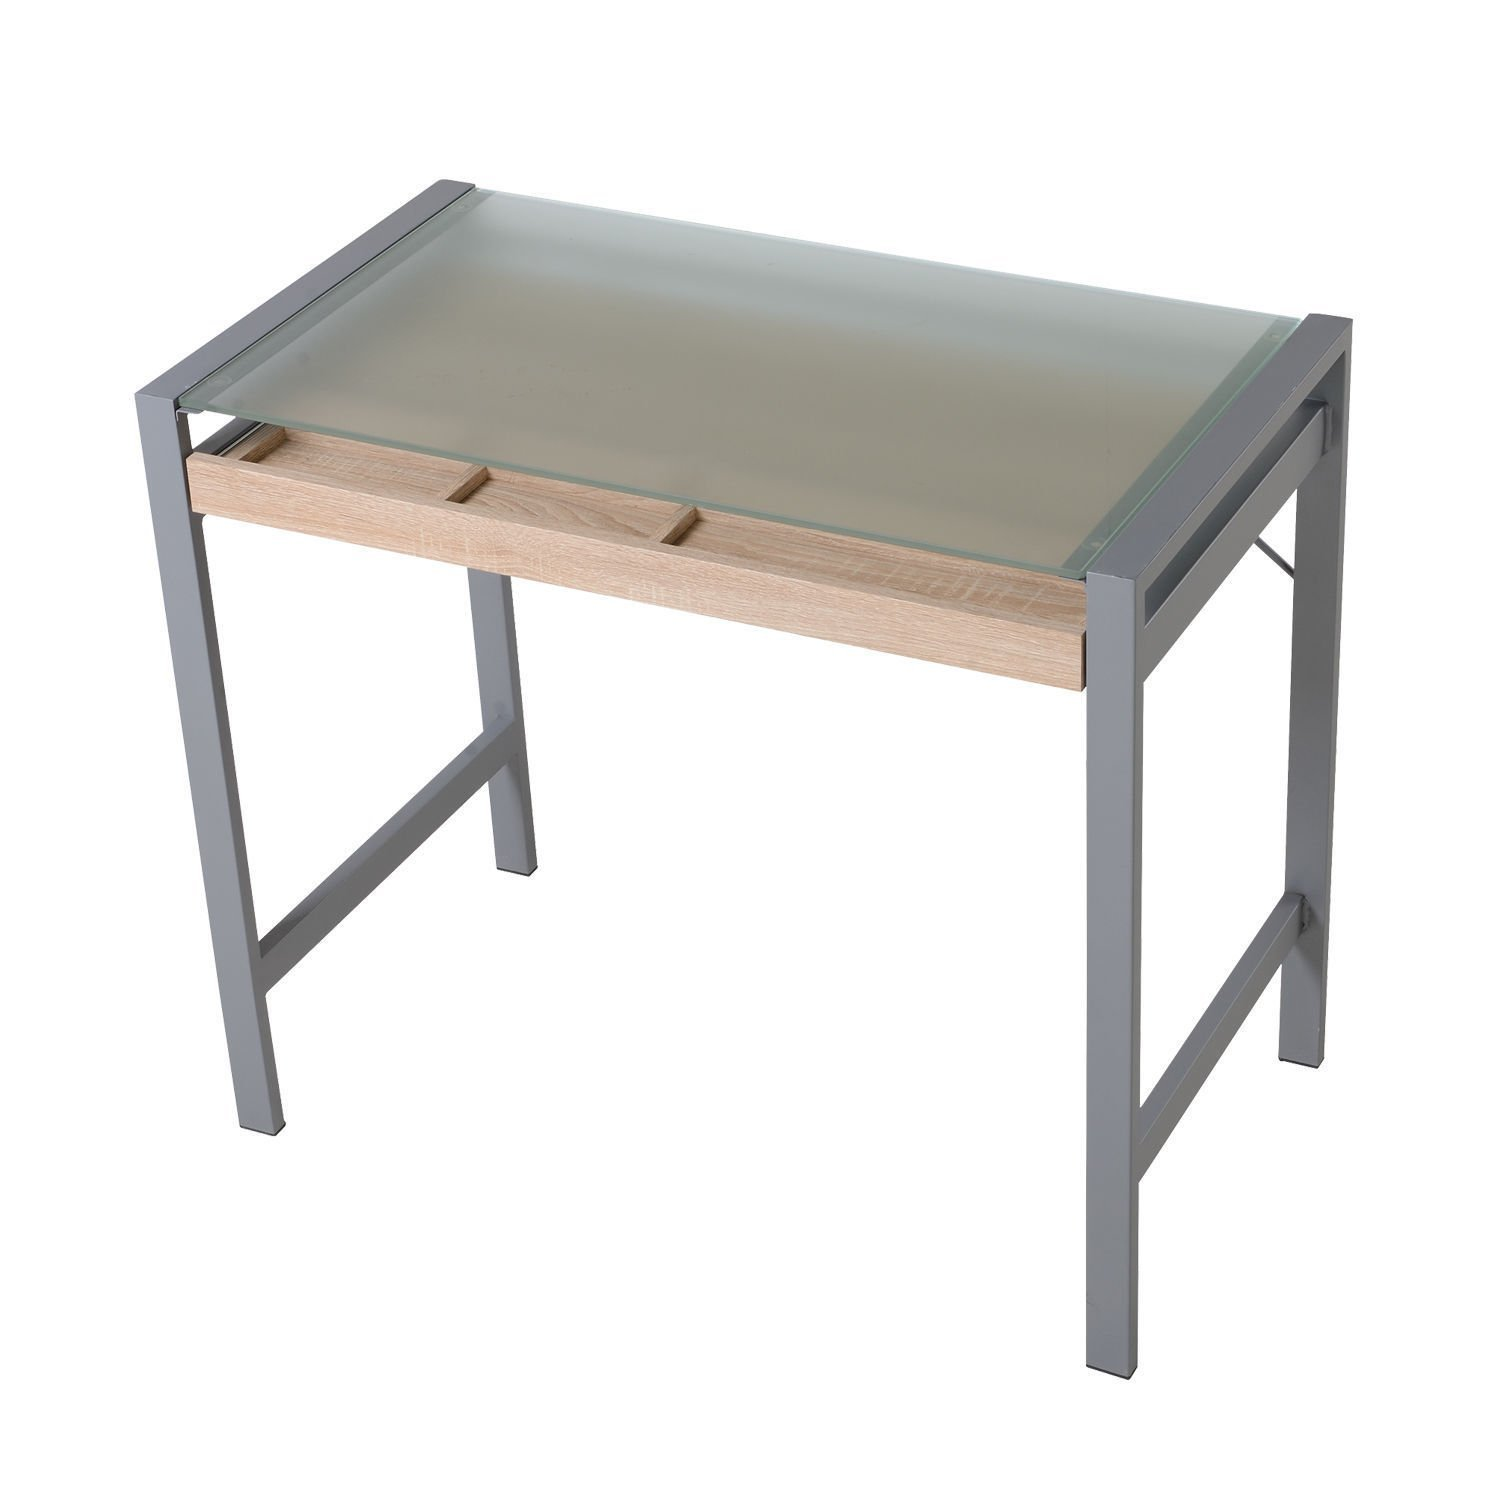 New Silver/Oak Modern Wood Frosted Glass Steel Computer Desk PC Laptop Writing Table w/Drawer